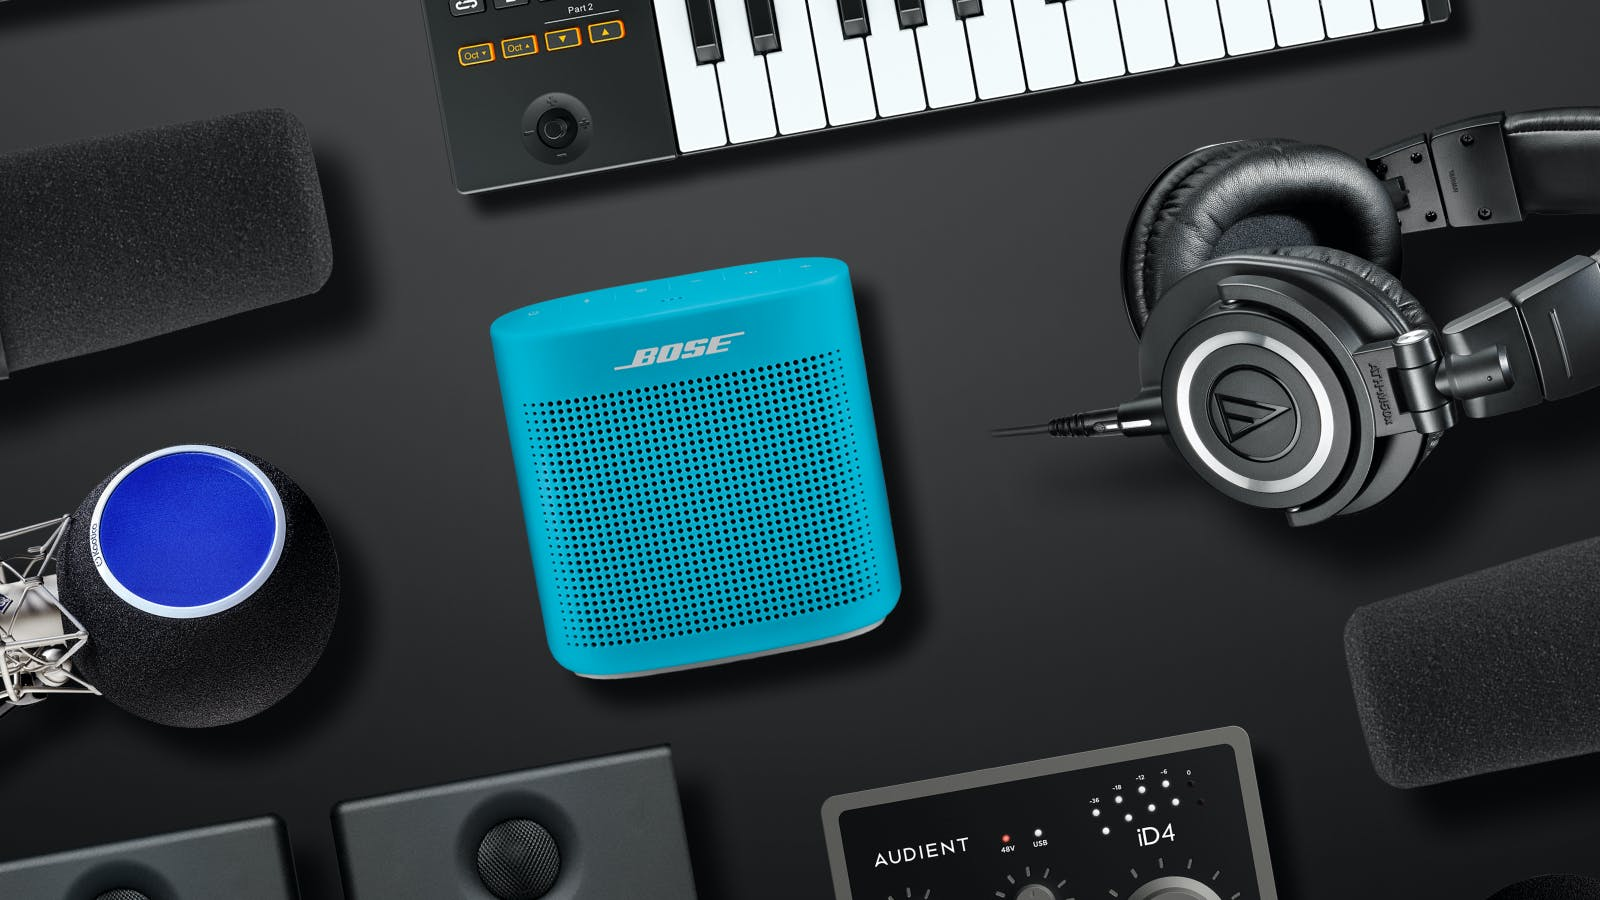 Small music studio gear including headphones, keyboards, and speakers